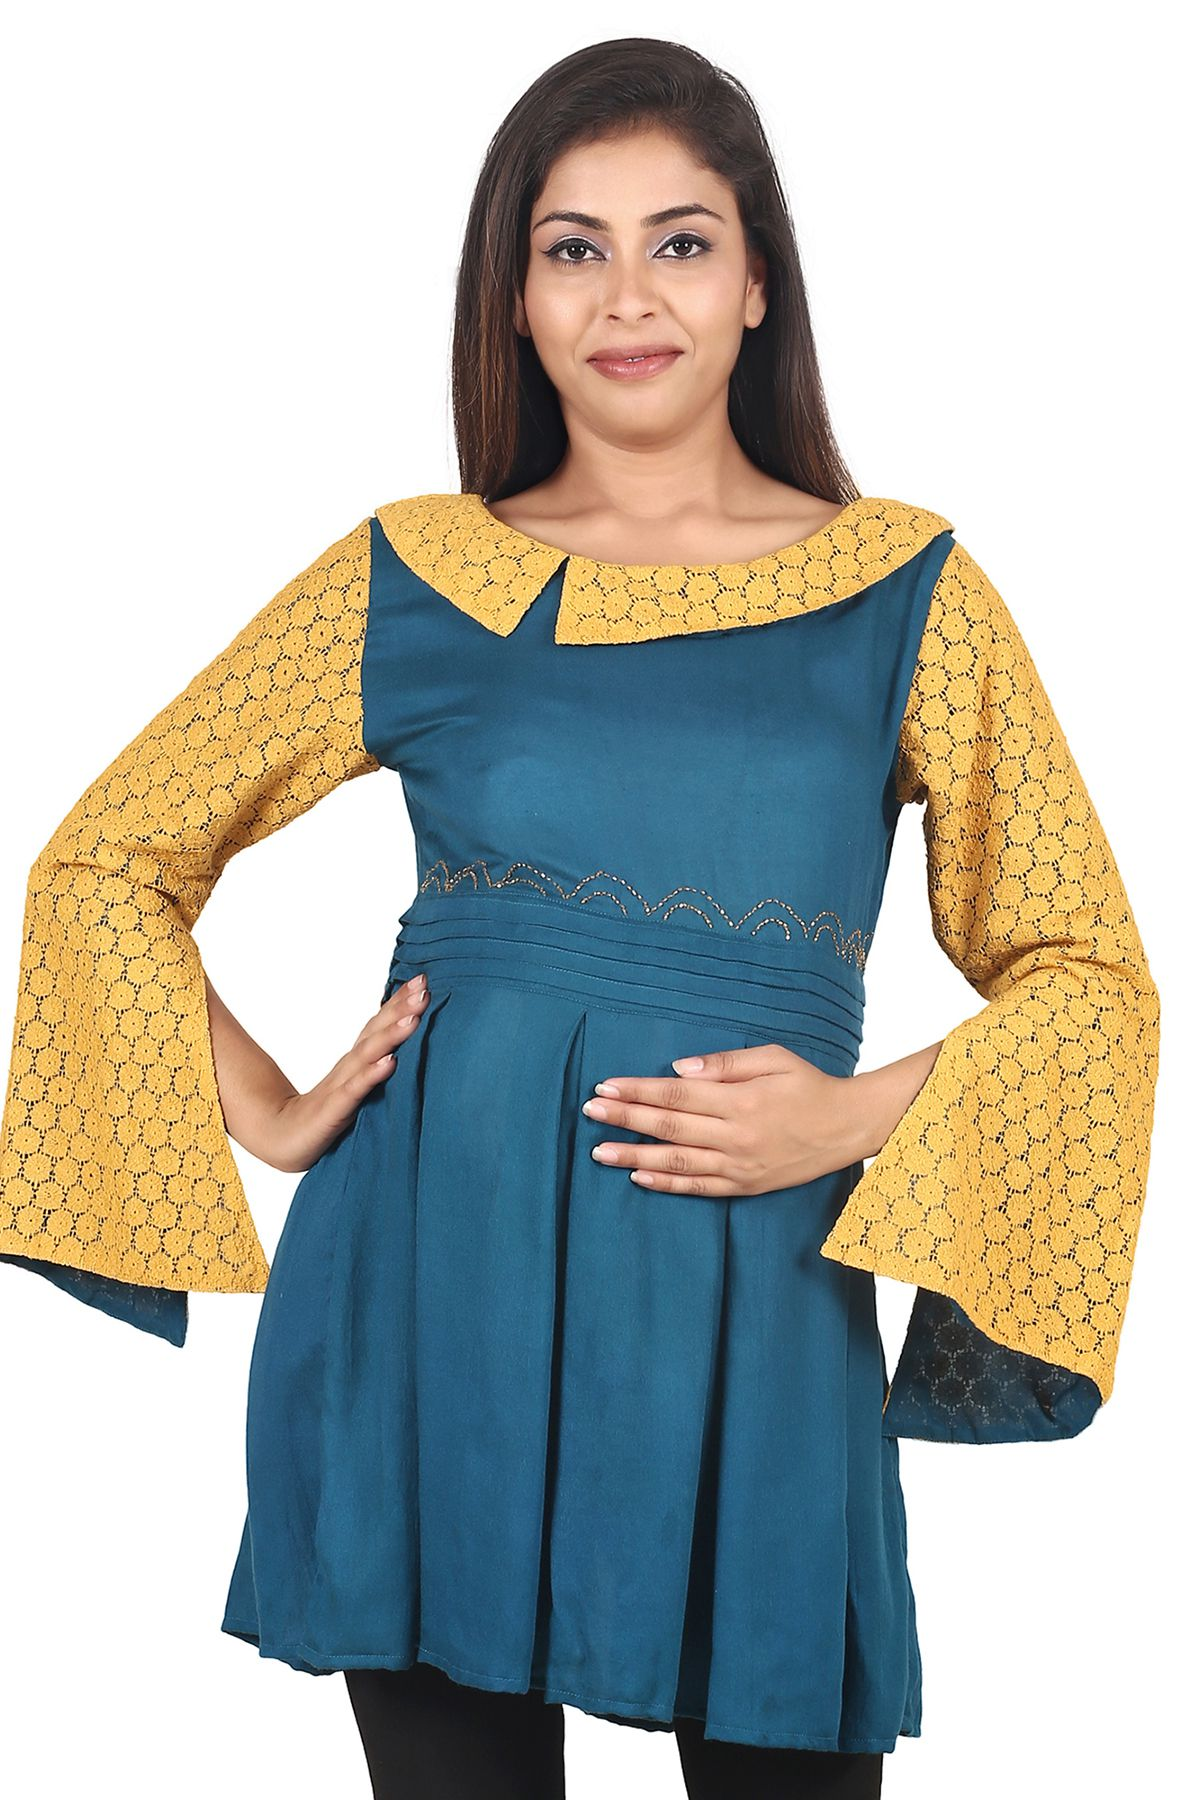 9teenAGAIN Viscose Maternity Blue Tops